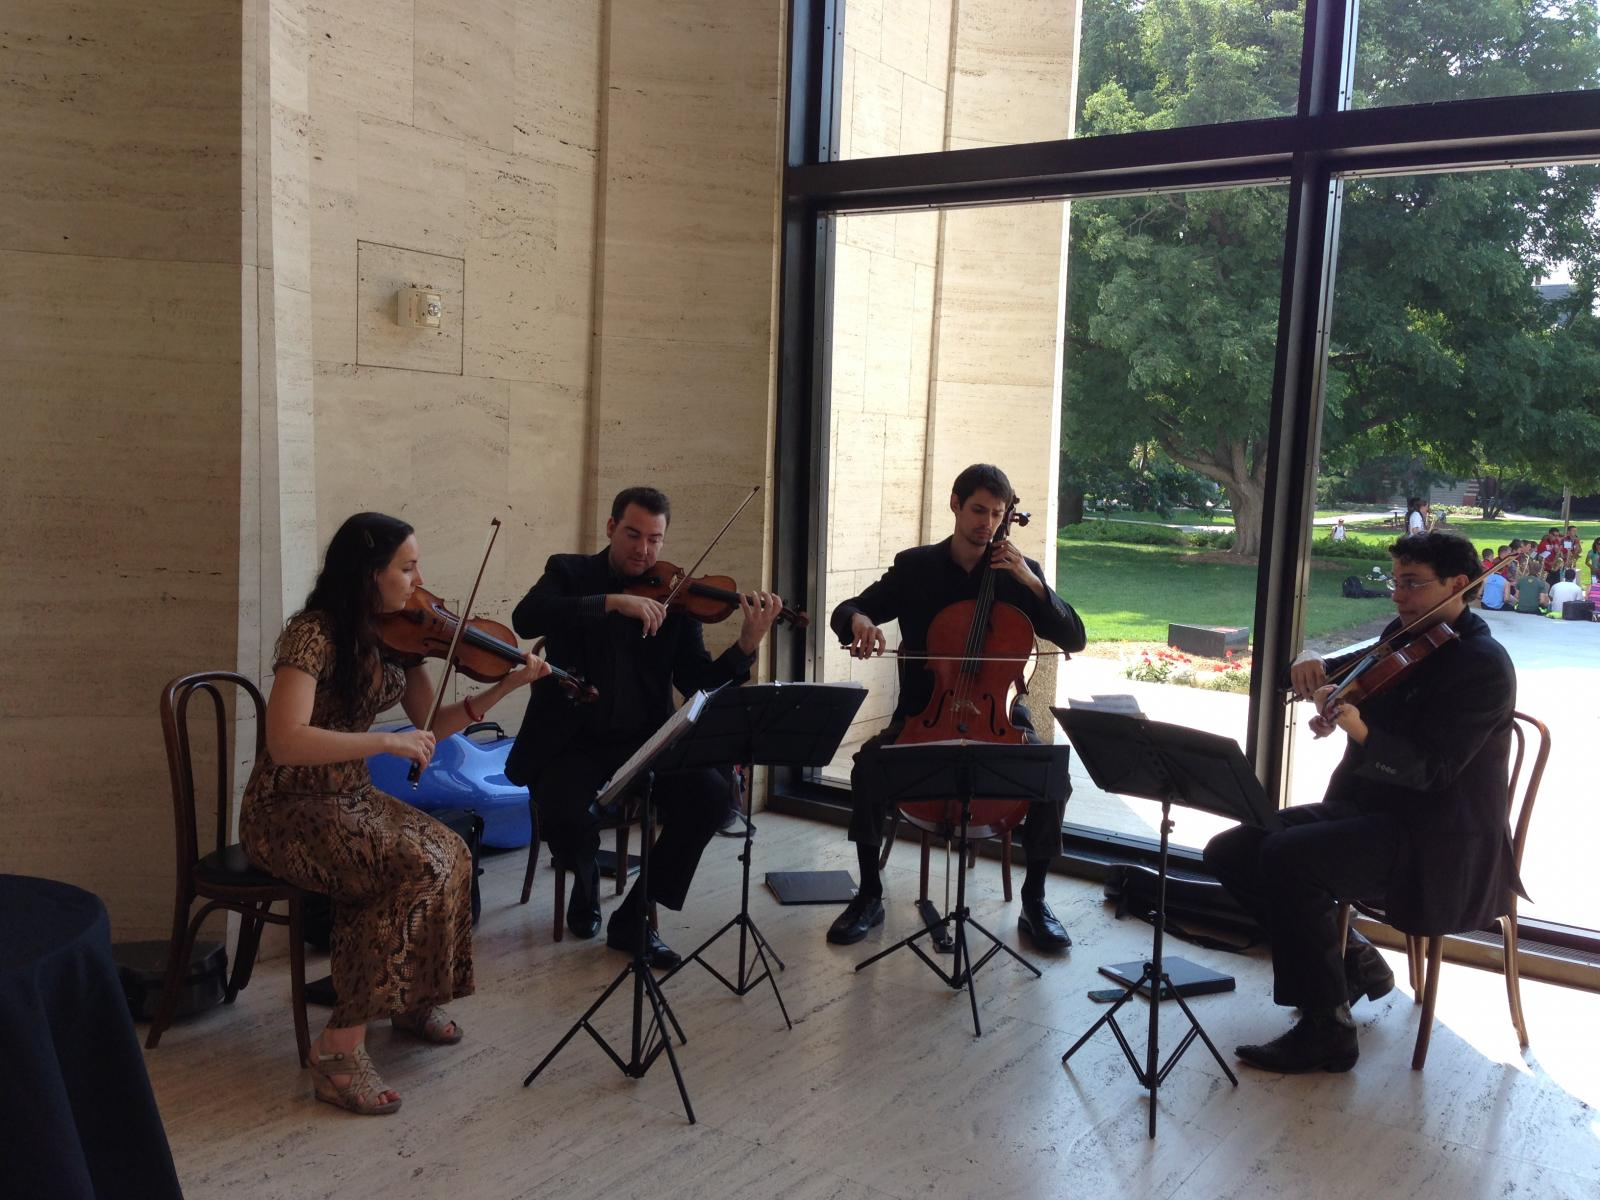 Skyros Quartet performing at the Sheldon Gallery